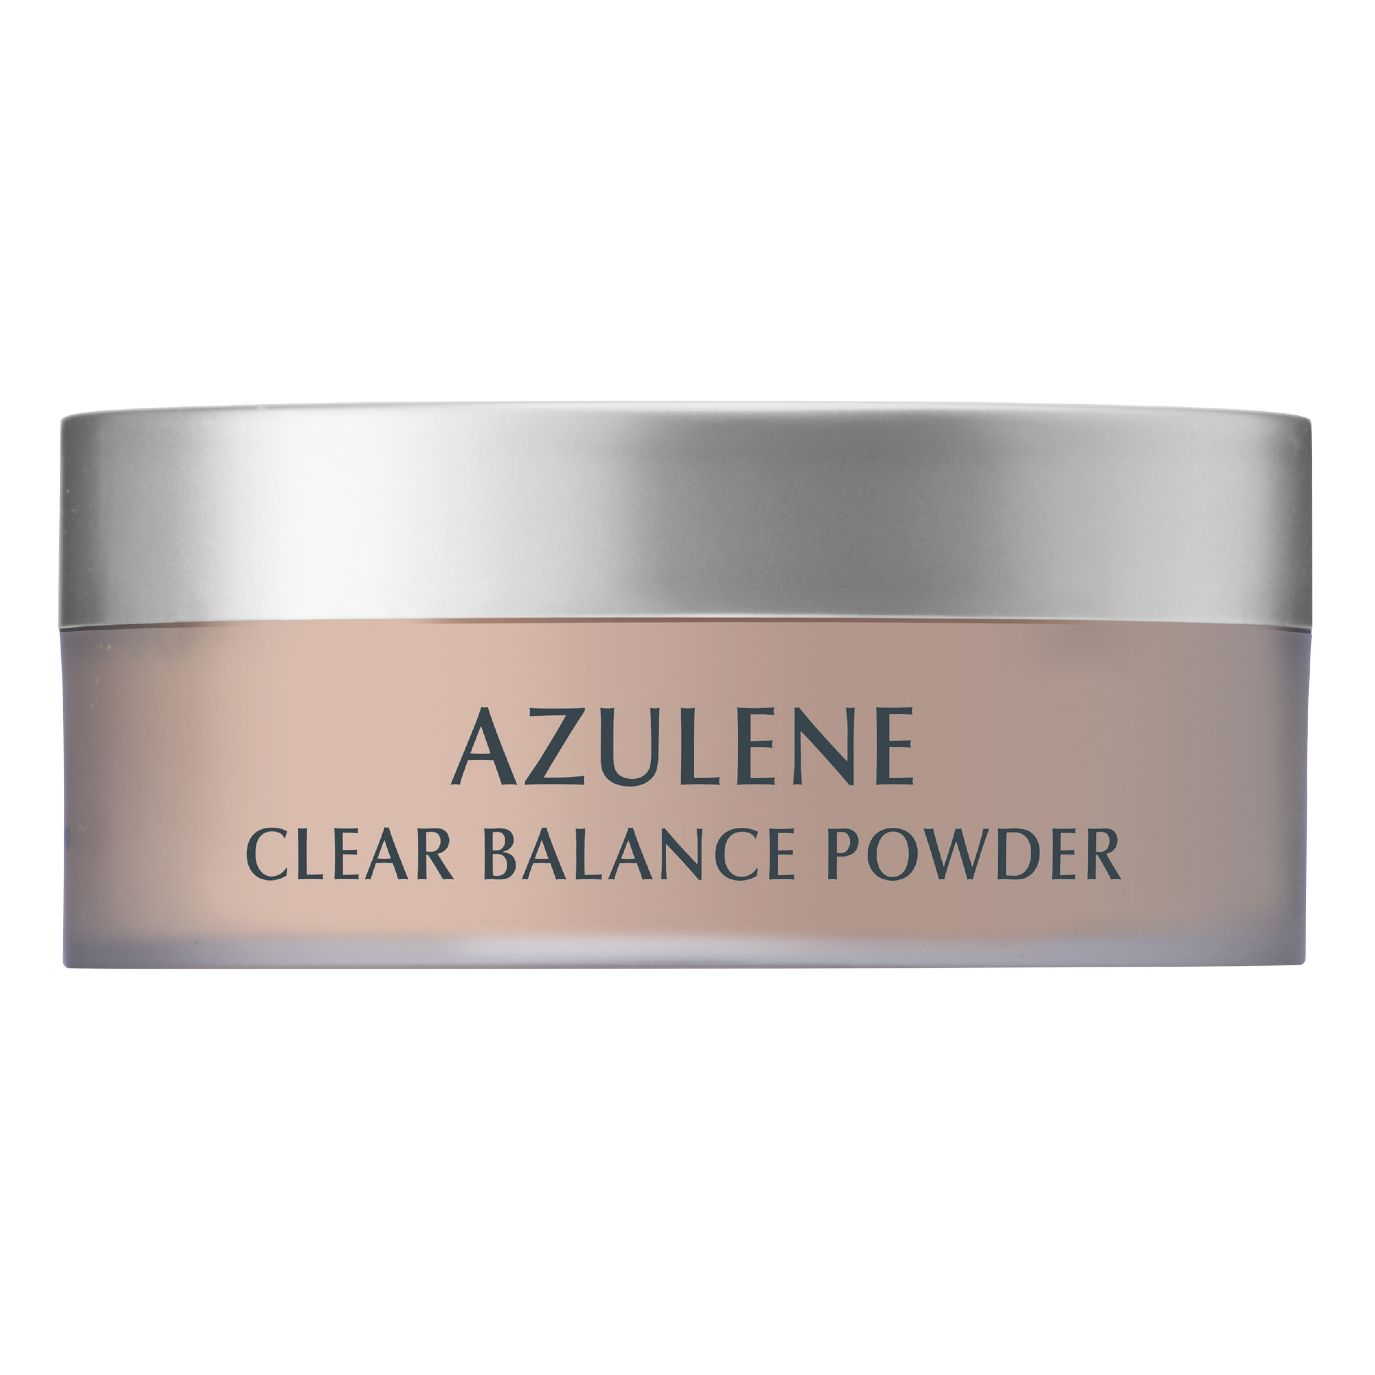 Azulene Clear Balance Powder